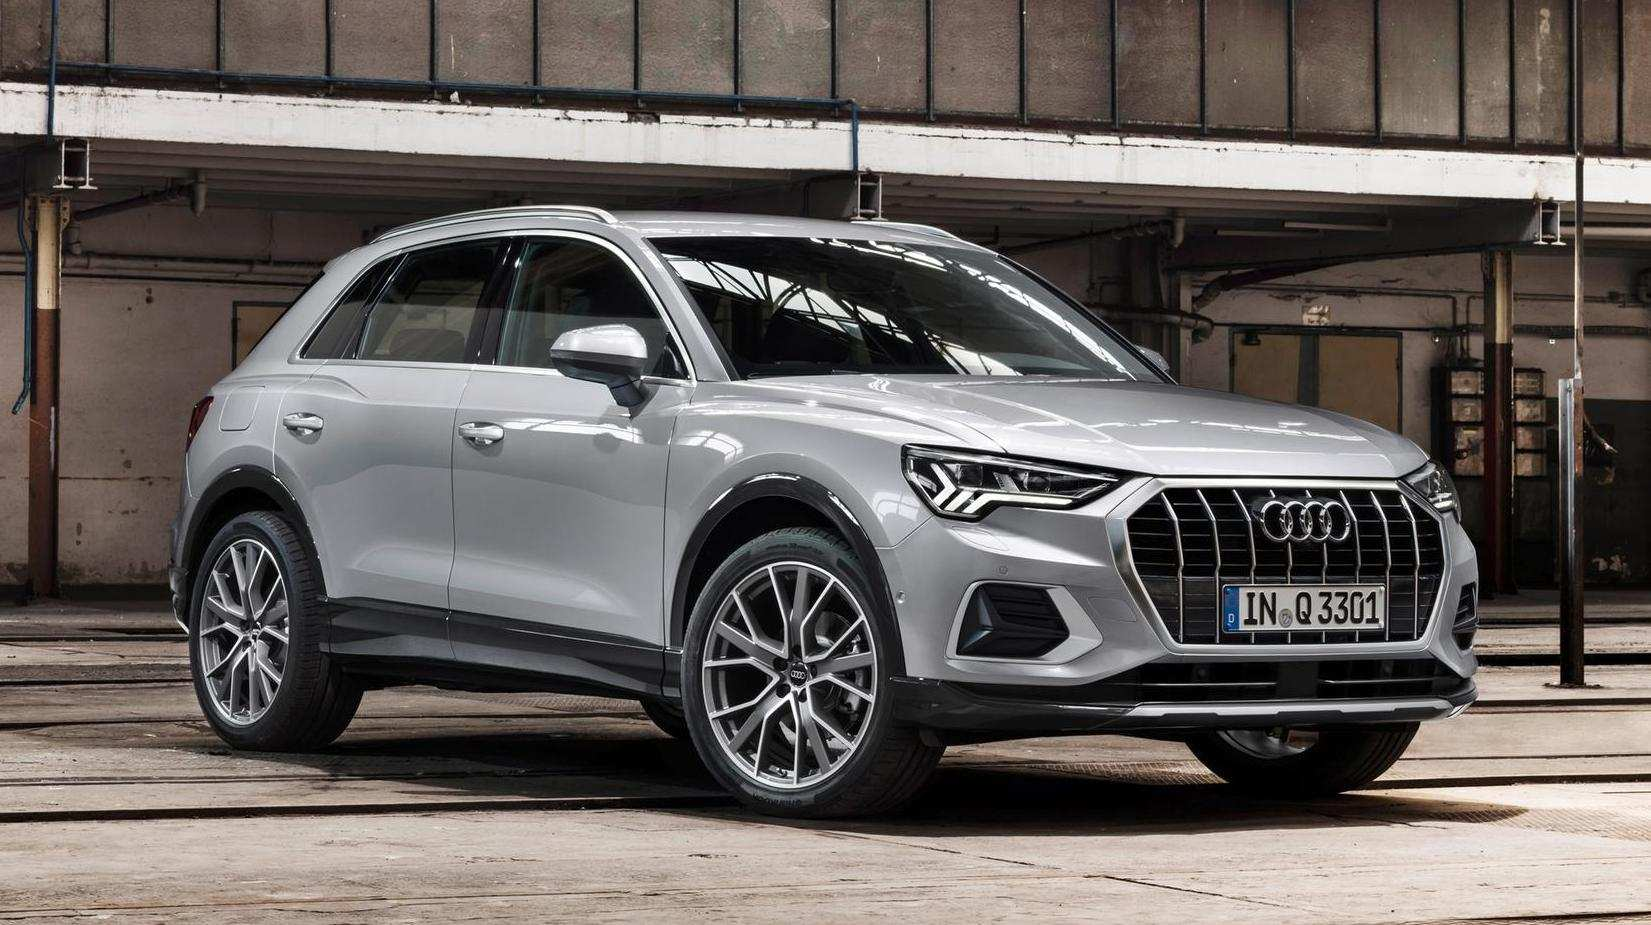 41 New 2020 Audi Q5 Suv Rumors